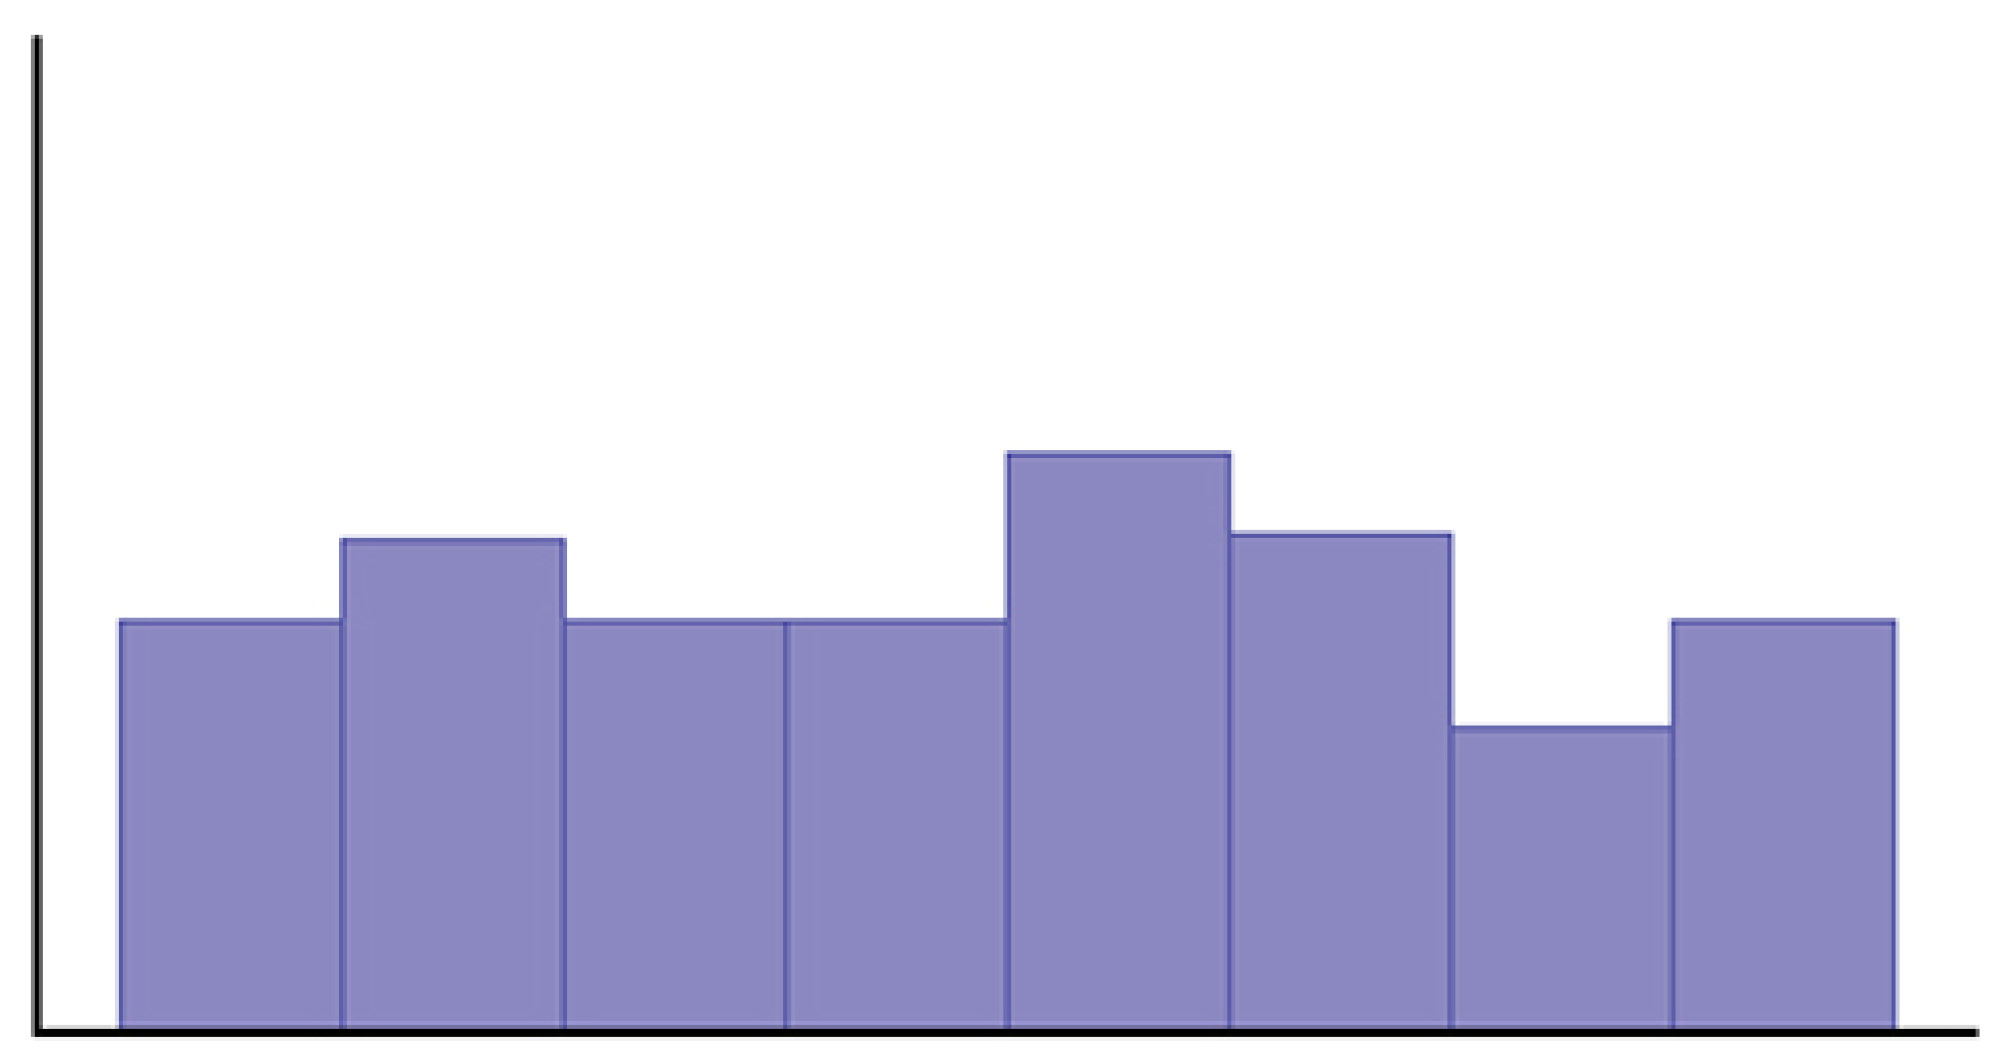 This graph is an unlabeled histogram. The heights of the bars do not vary much across the distribution.